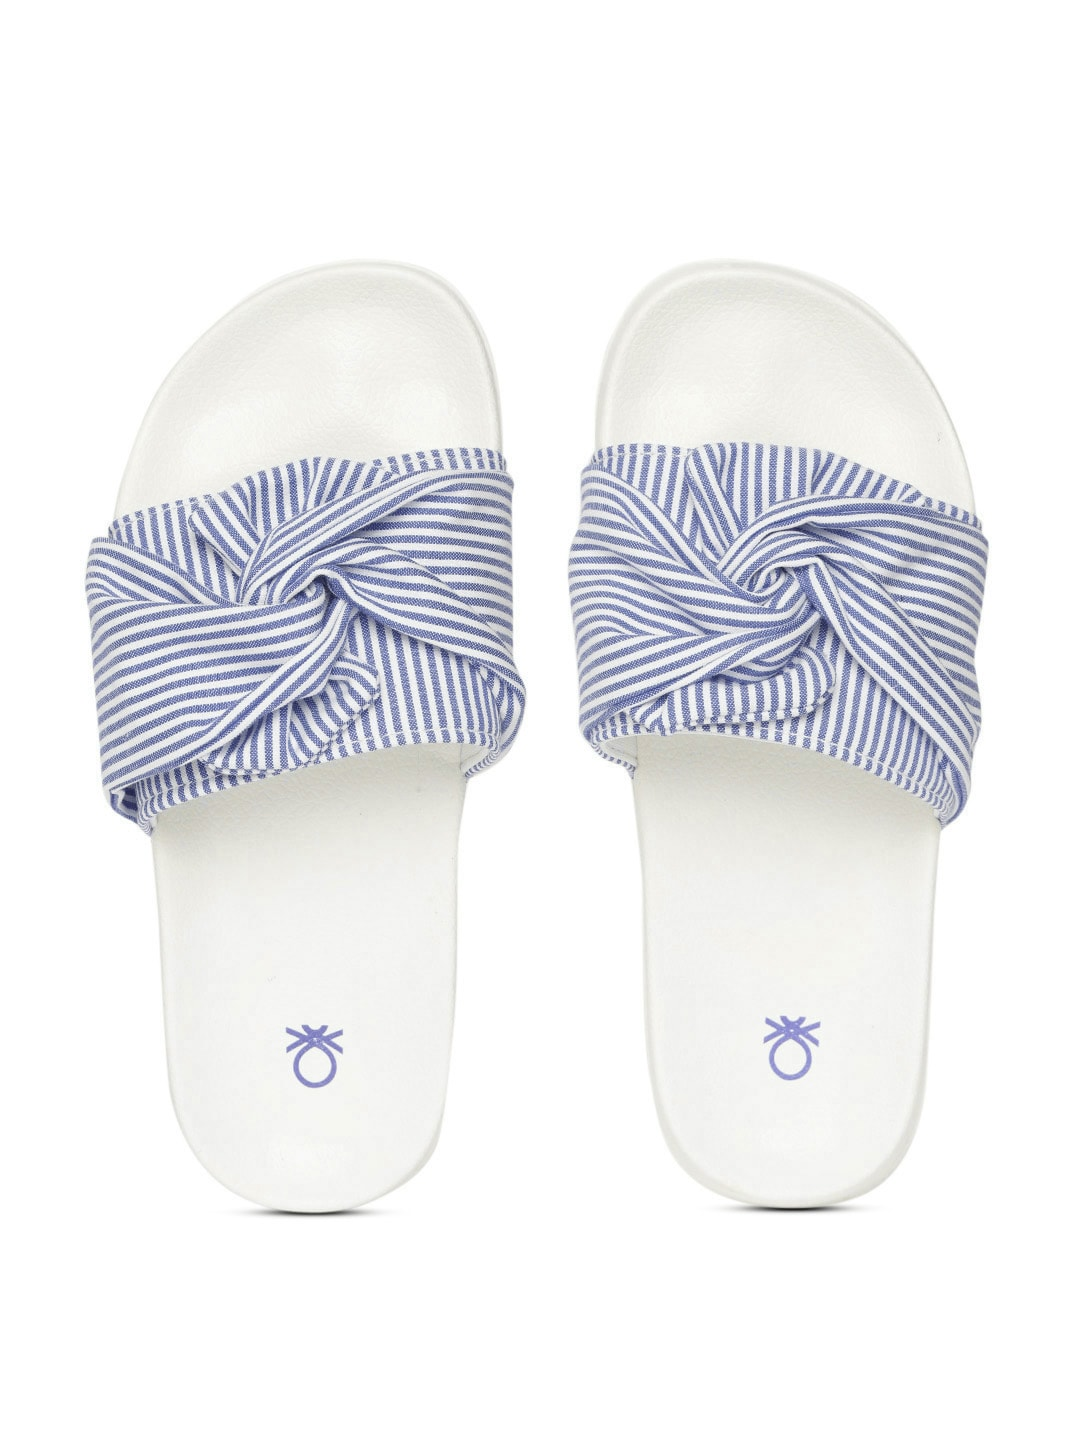 b298a18ad1851 Chappal - Buy Flip Flops   Chappals Online In India